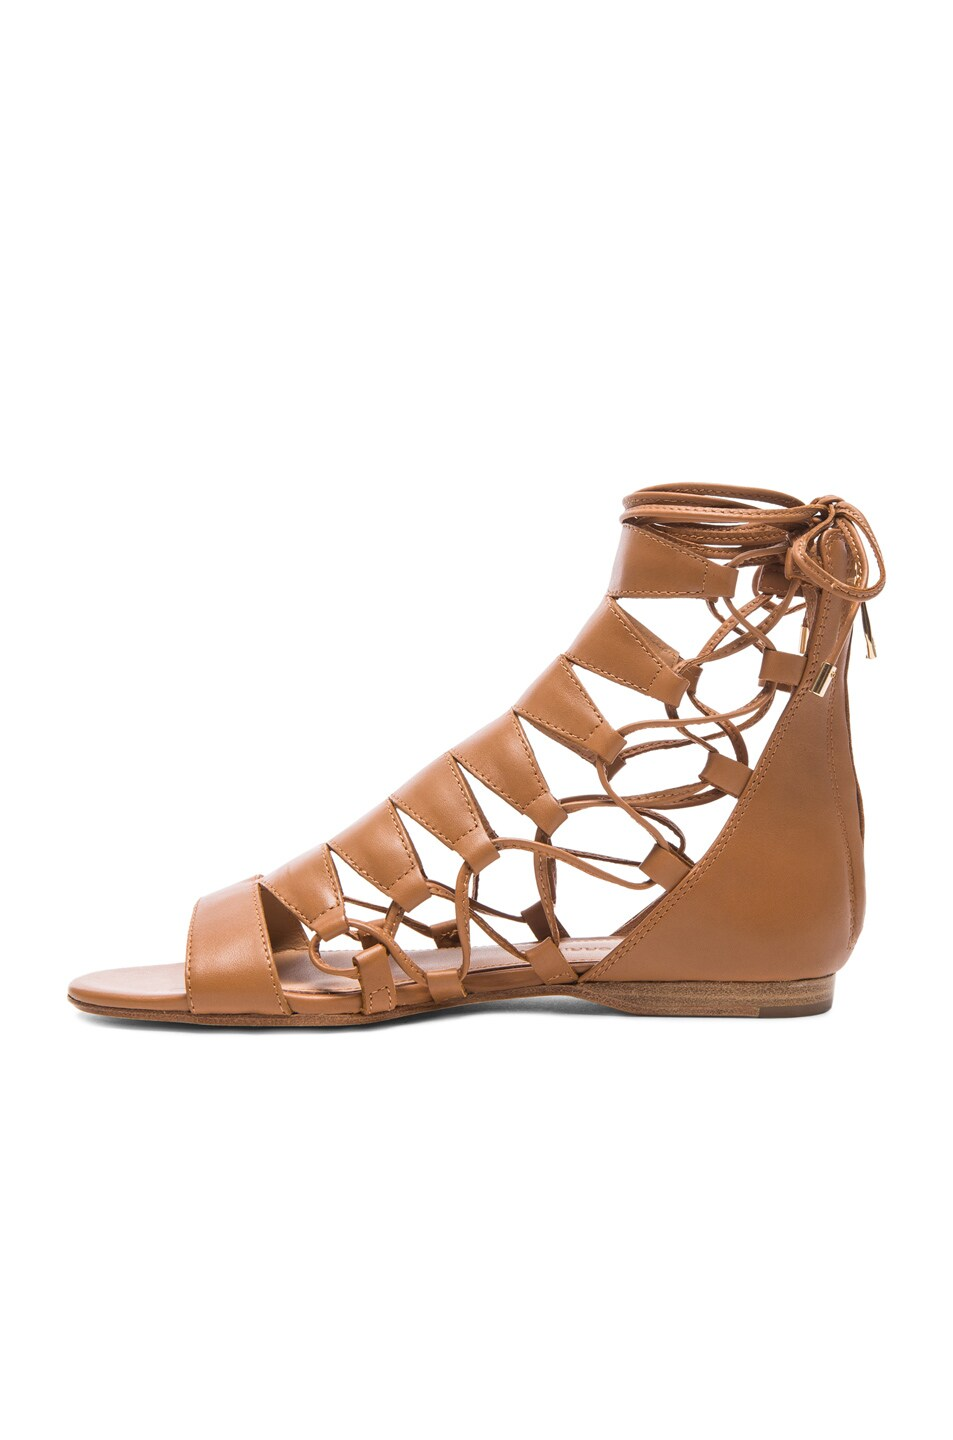 Image 5 of Sigerson Morrison Adal Lace Up Leather Sandals in Cuoio